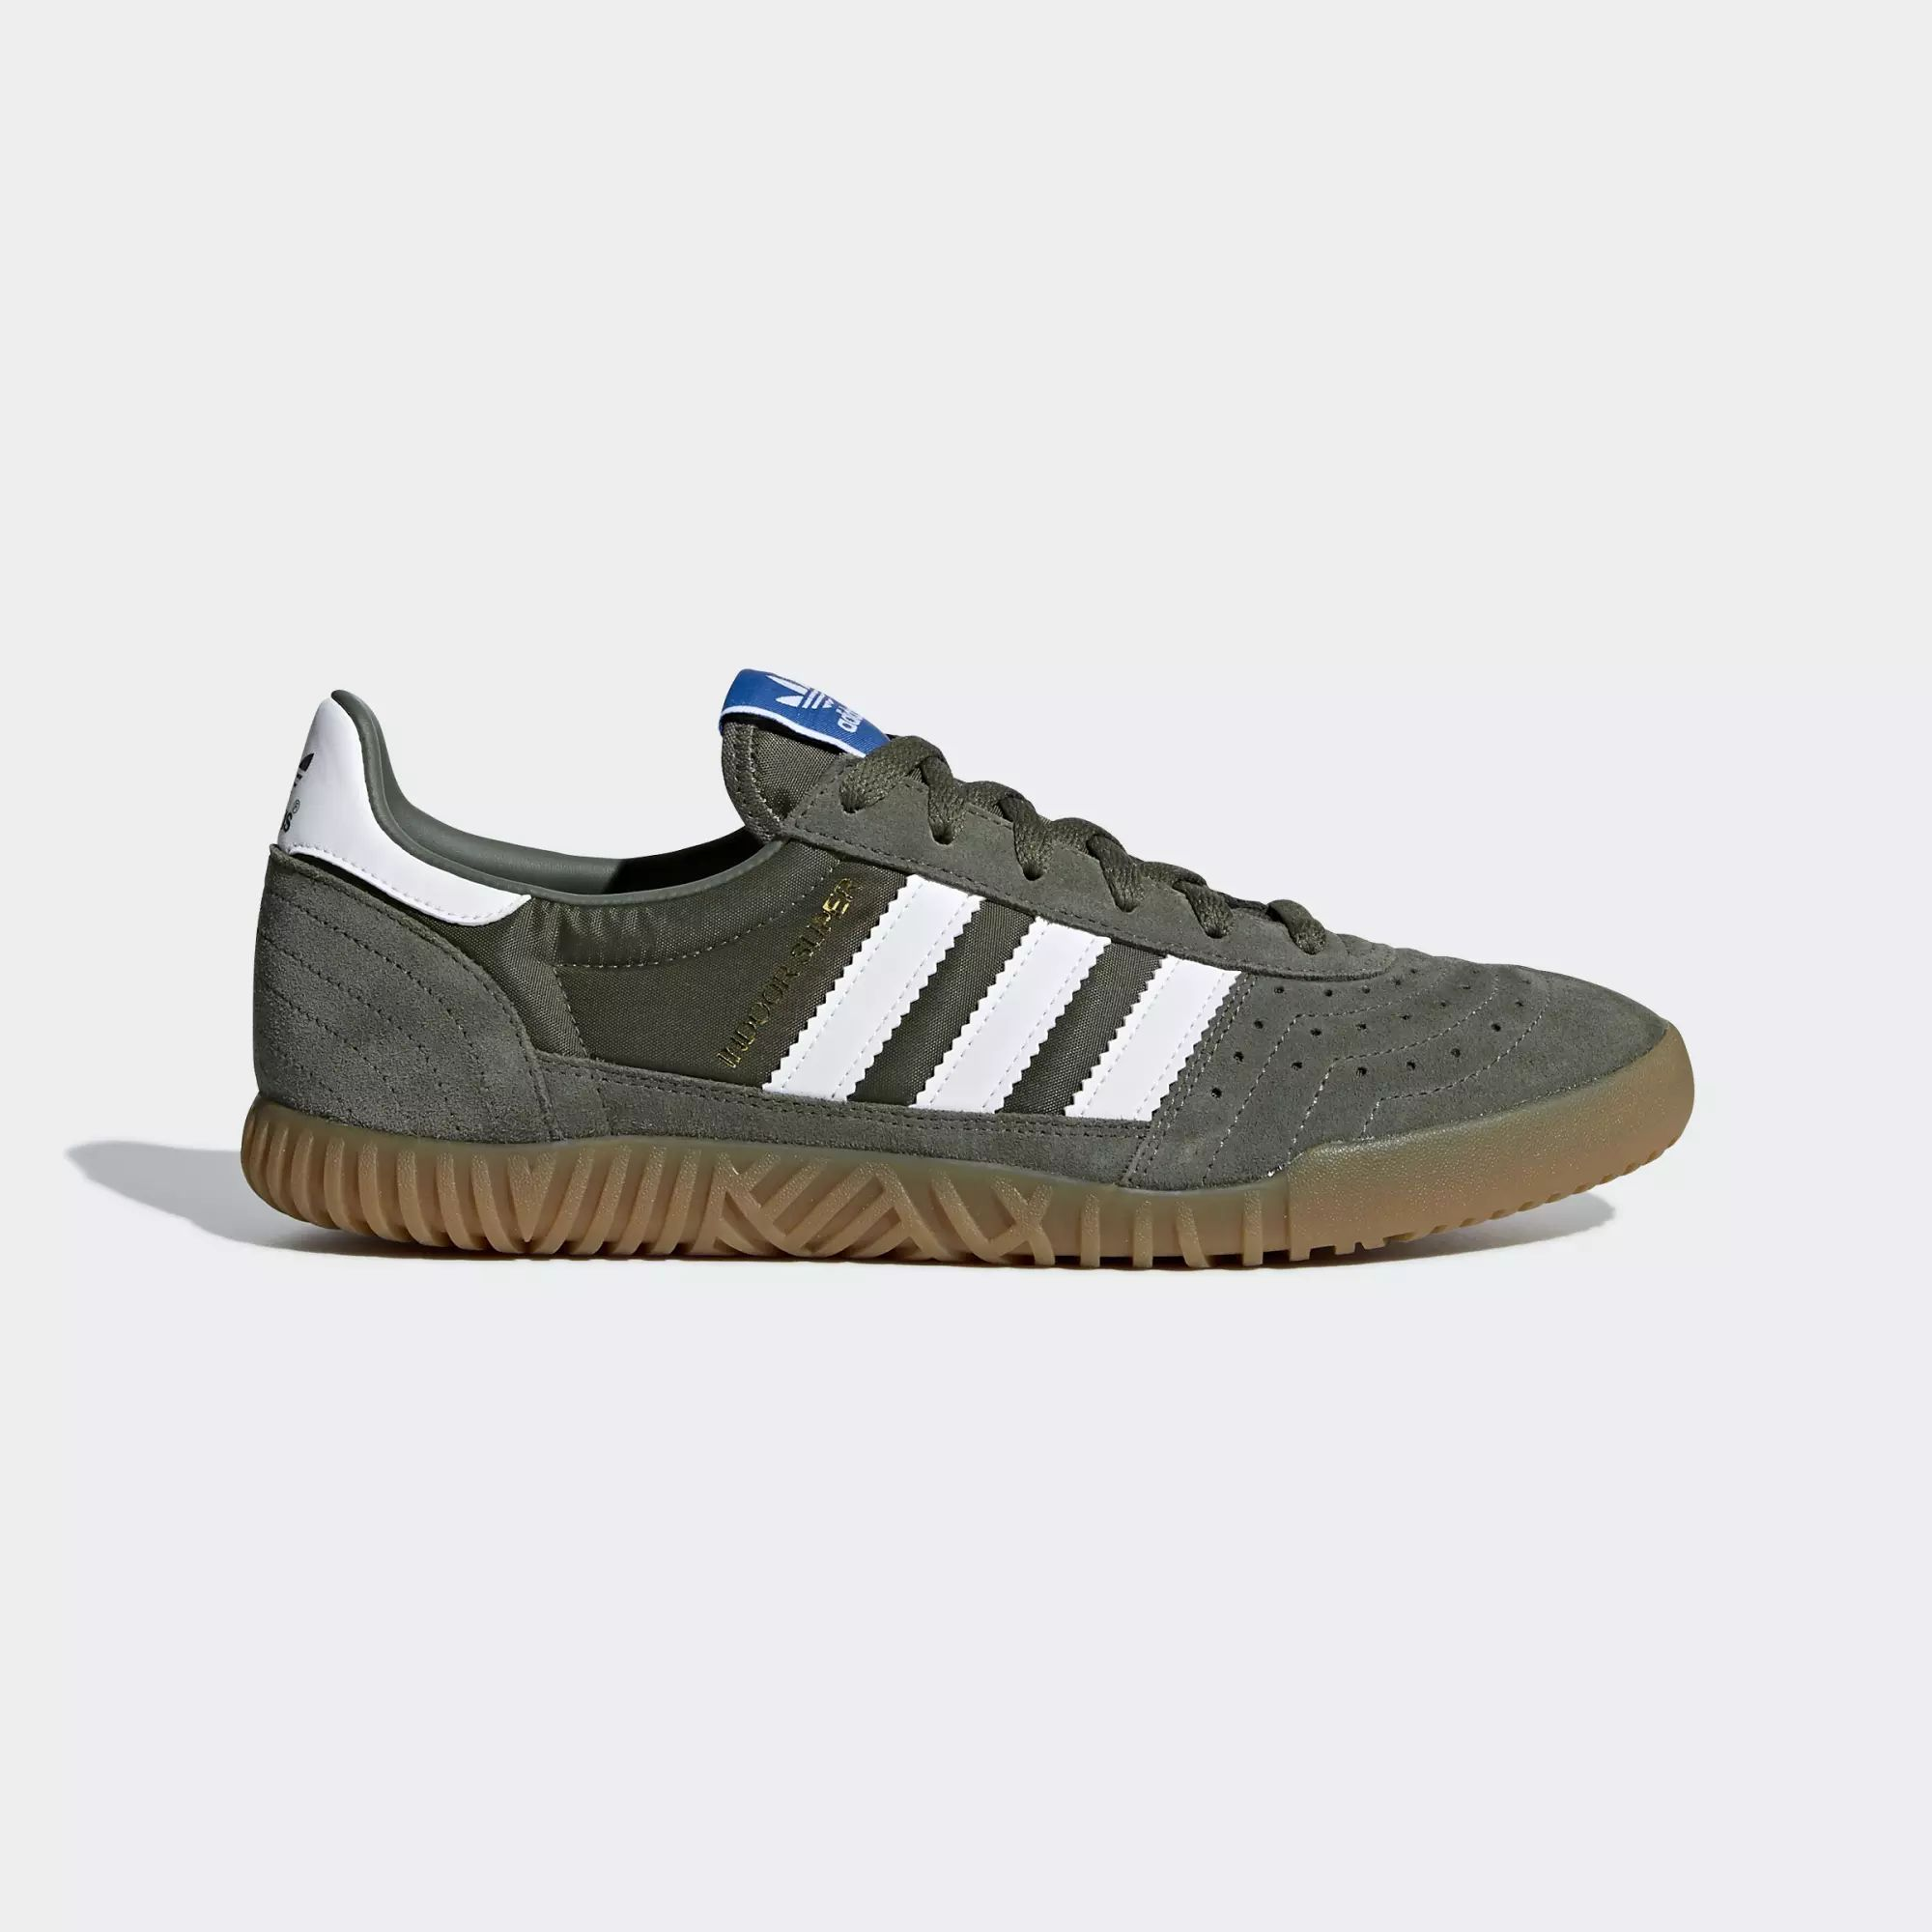 Adidas Indoor Super Shoes - Base Green / Ftwr White / Gum